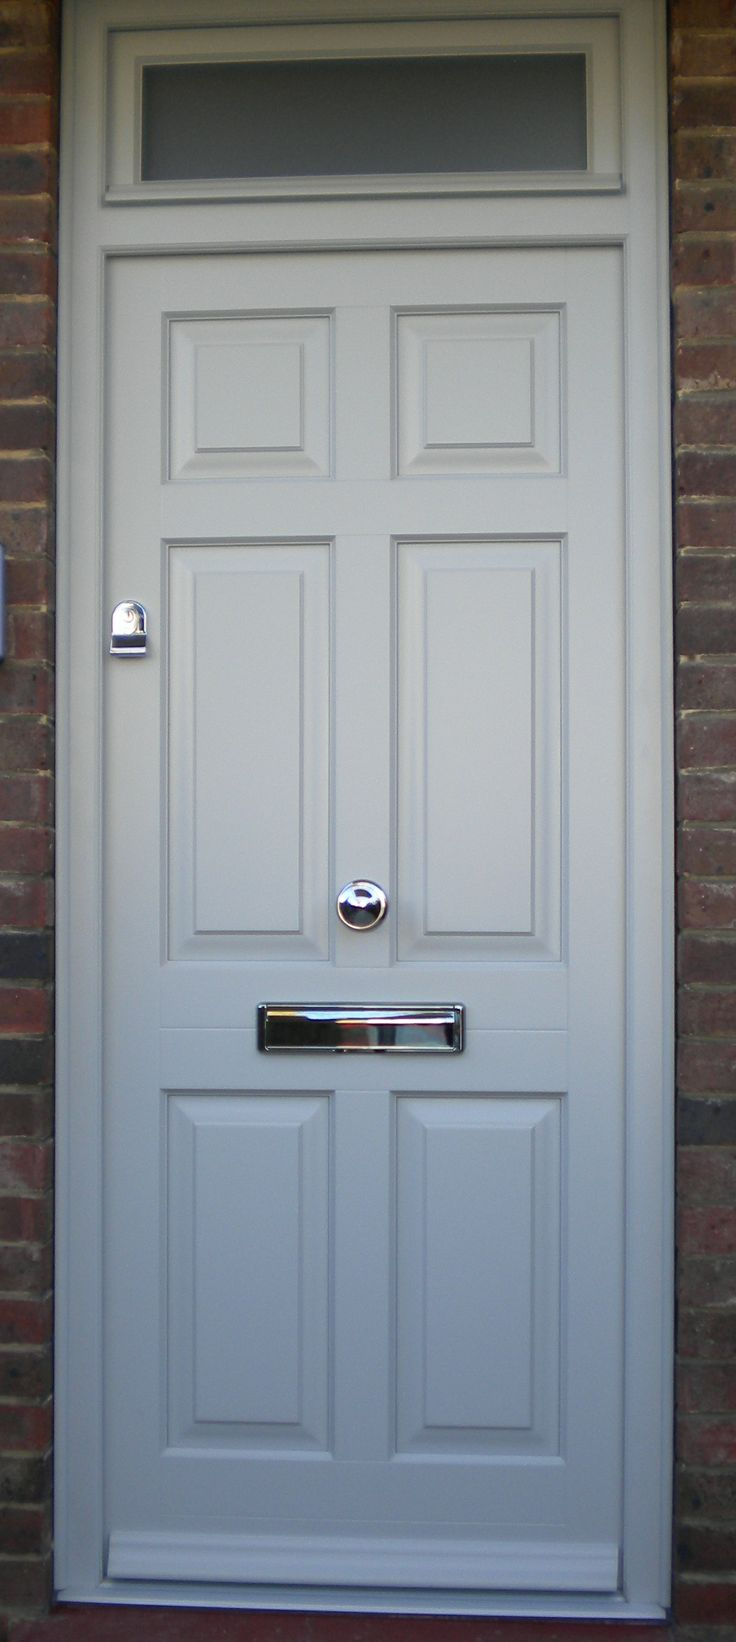 Conventional Front Doors | Front Doors / Entrance Doors | Sash Windows, Timber Windows and Timber Doors | Timber Windows